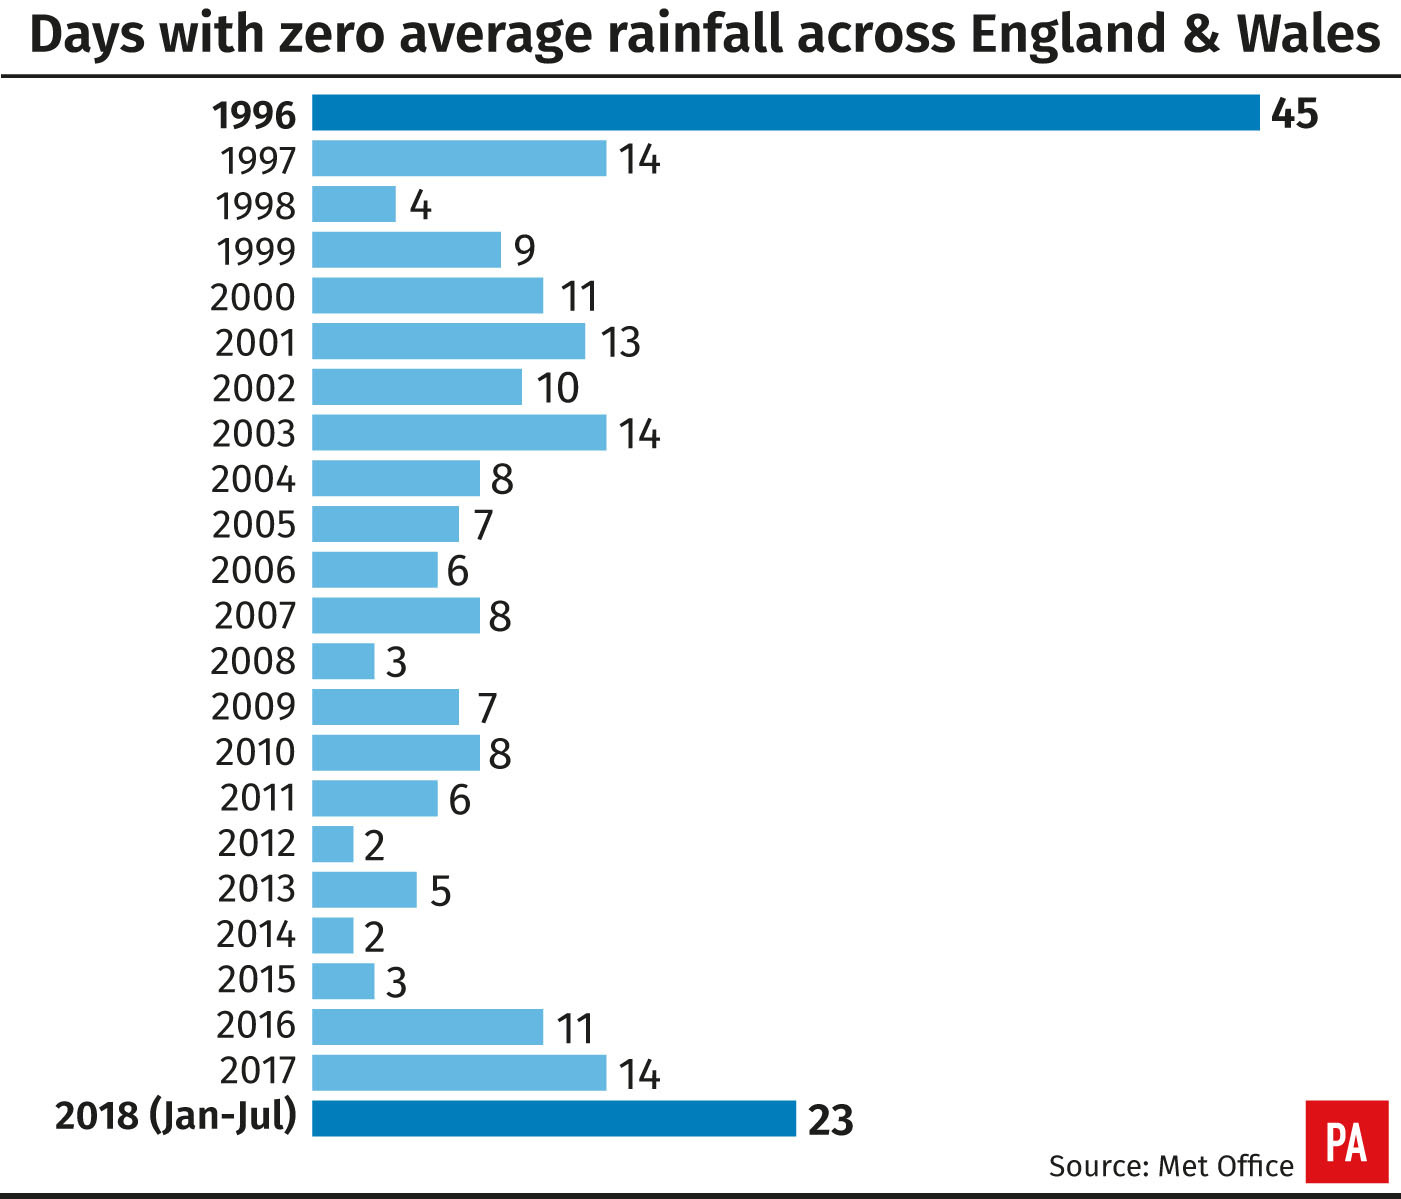 Days with zero average rainfall across England & Wales